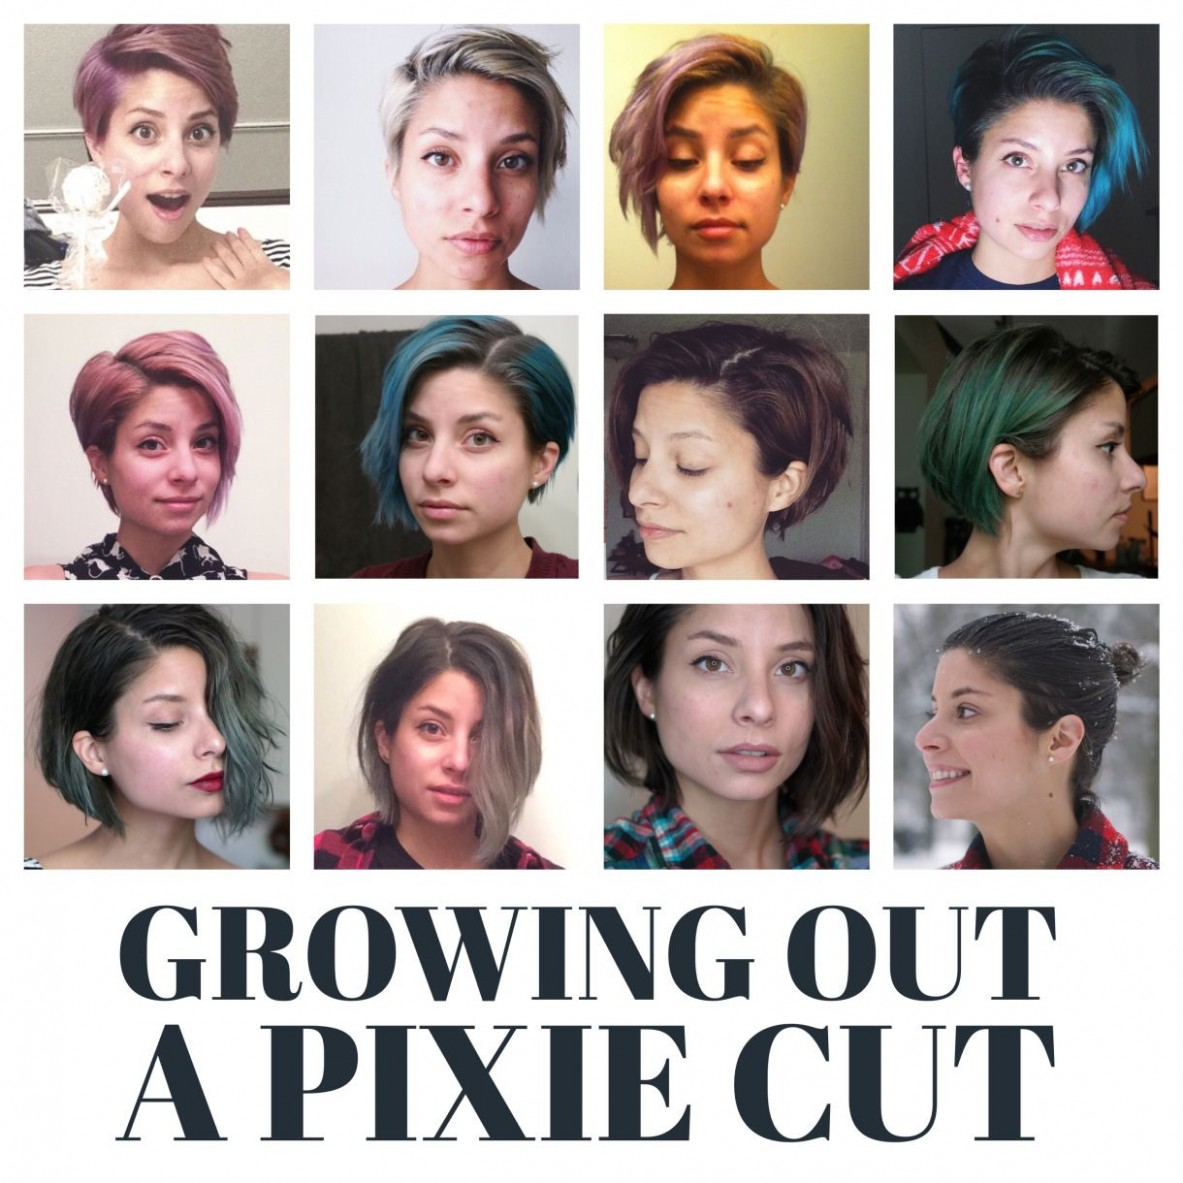 Pin On Hairs Growing Out A Pixie Cut Timeline